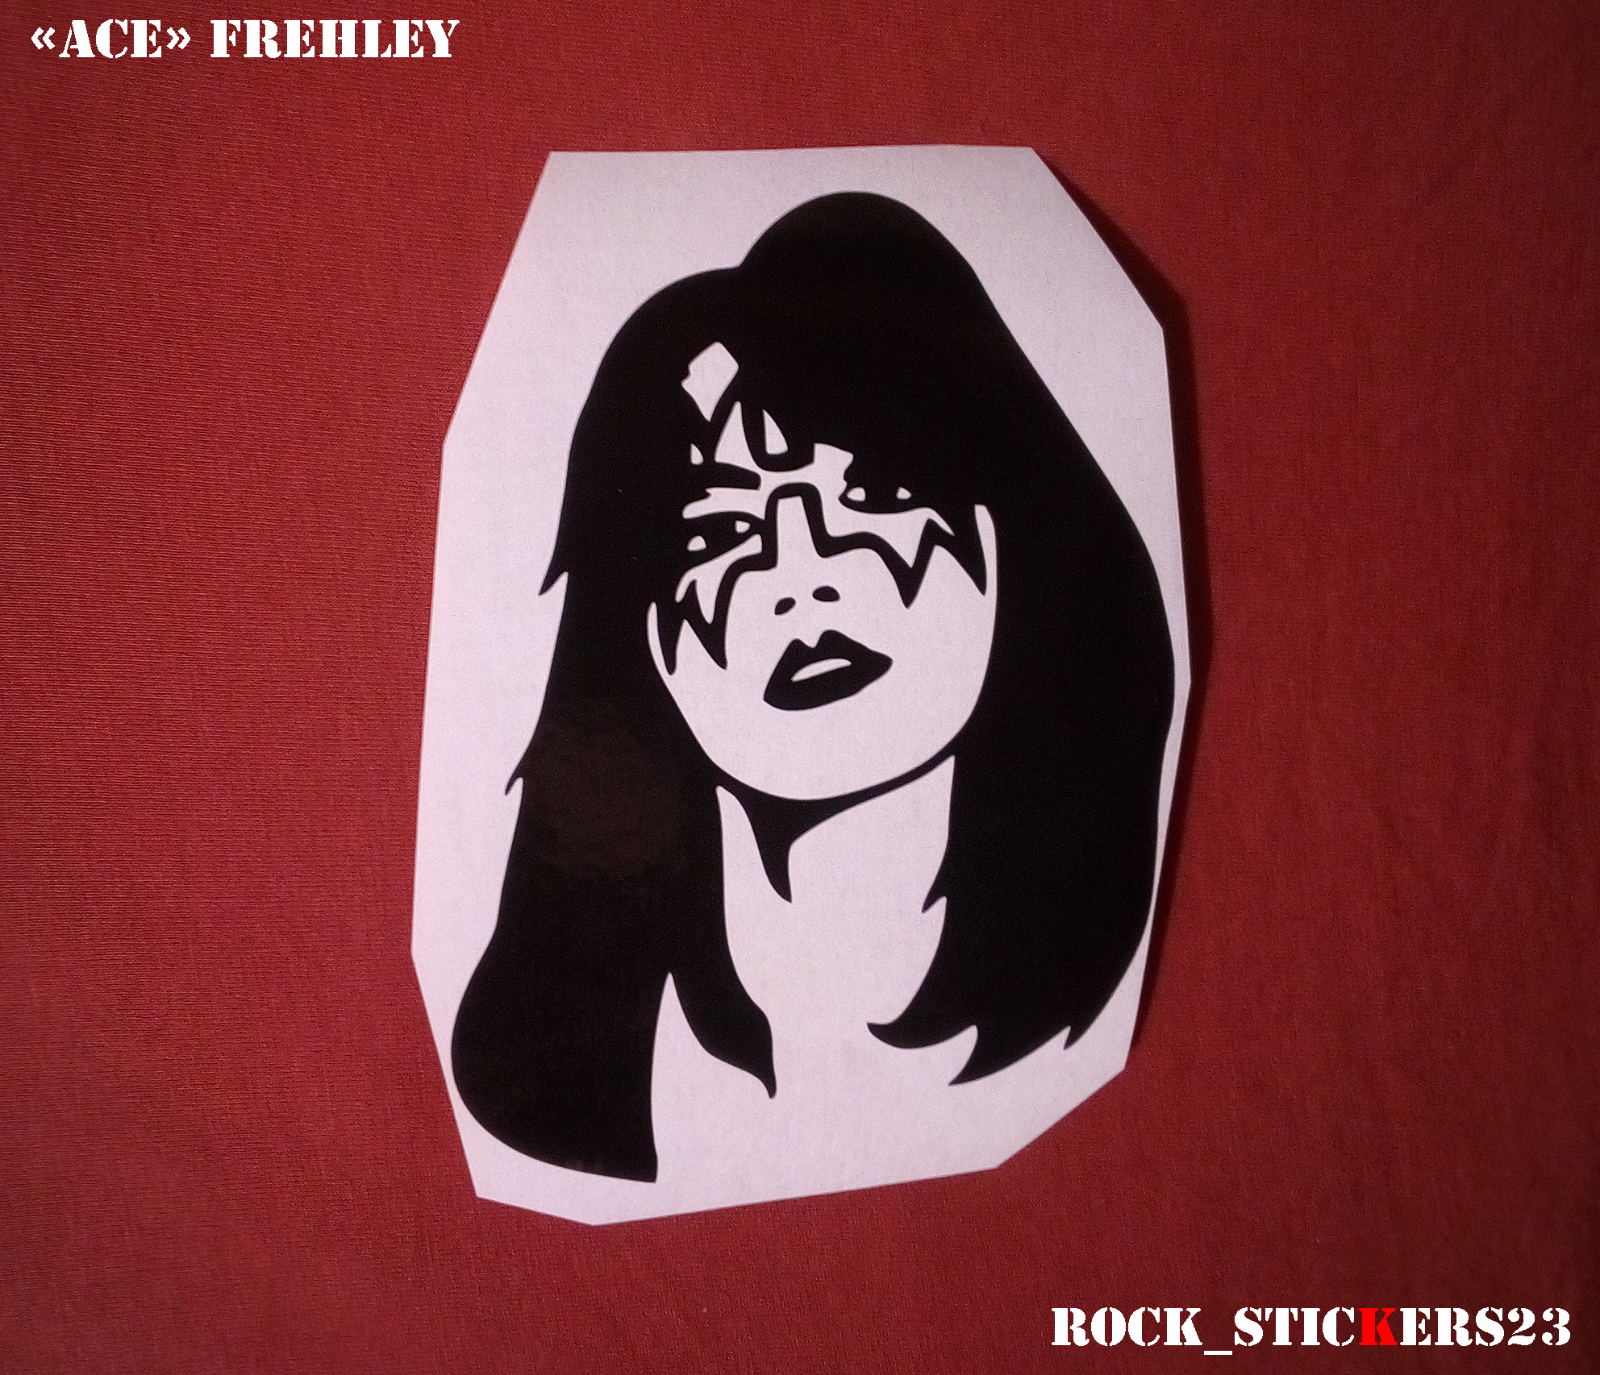 Ace frehley sticker kiss vinyl decal chris shiflett gibson les paul foo fighters 2 2 of 5